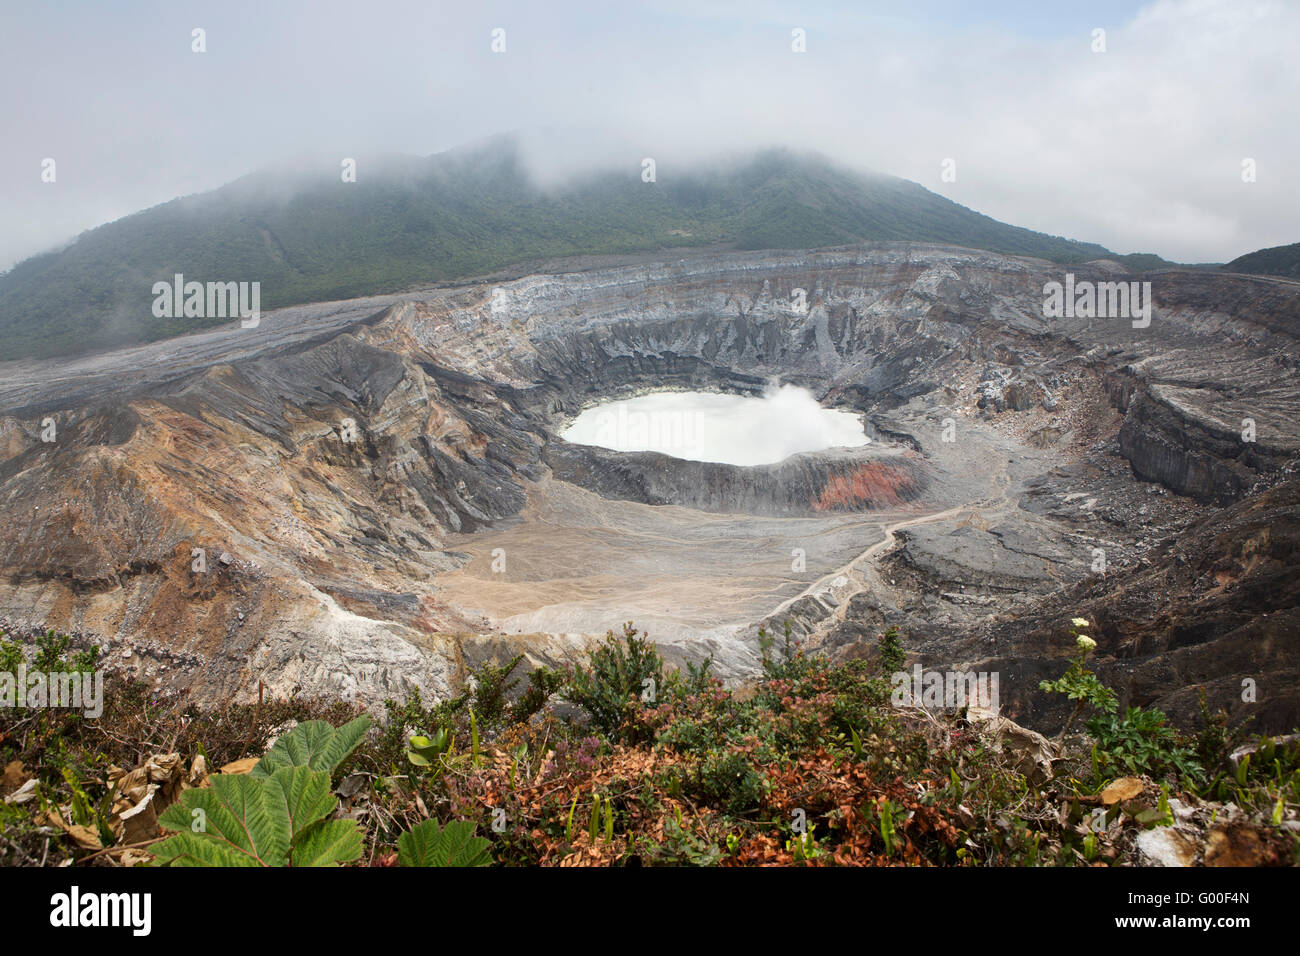 Vegetation at the crater of Poas Volcano in Parque Nacional Volcan Poas (Poas Volcano National Park) in Costa Rica. - Stock Image